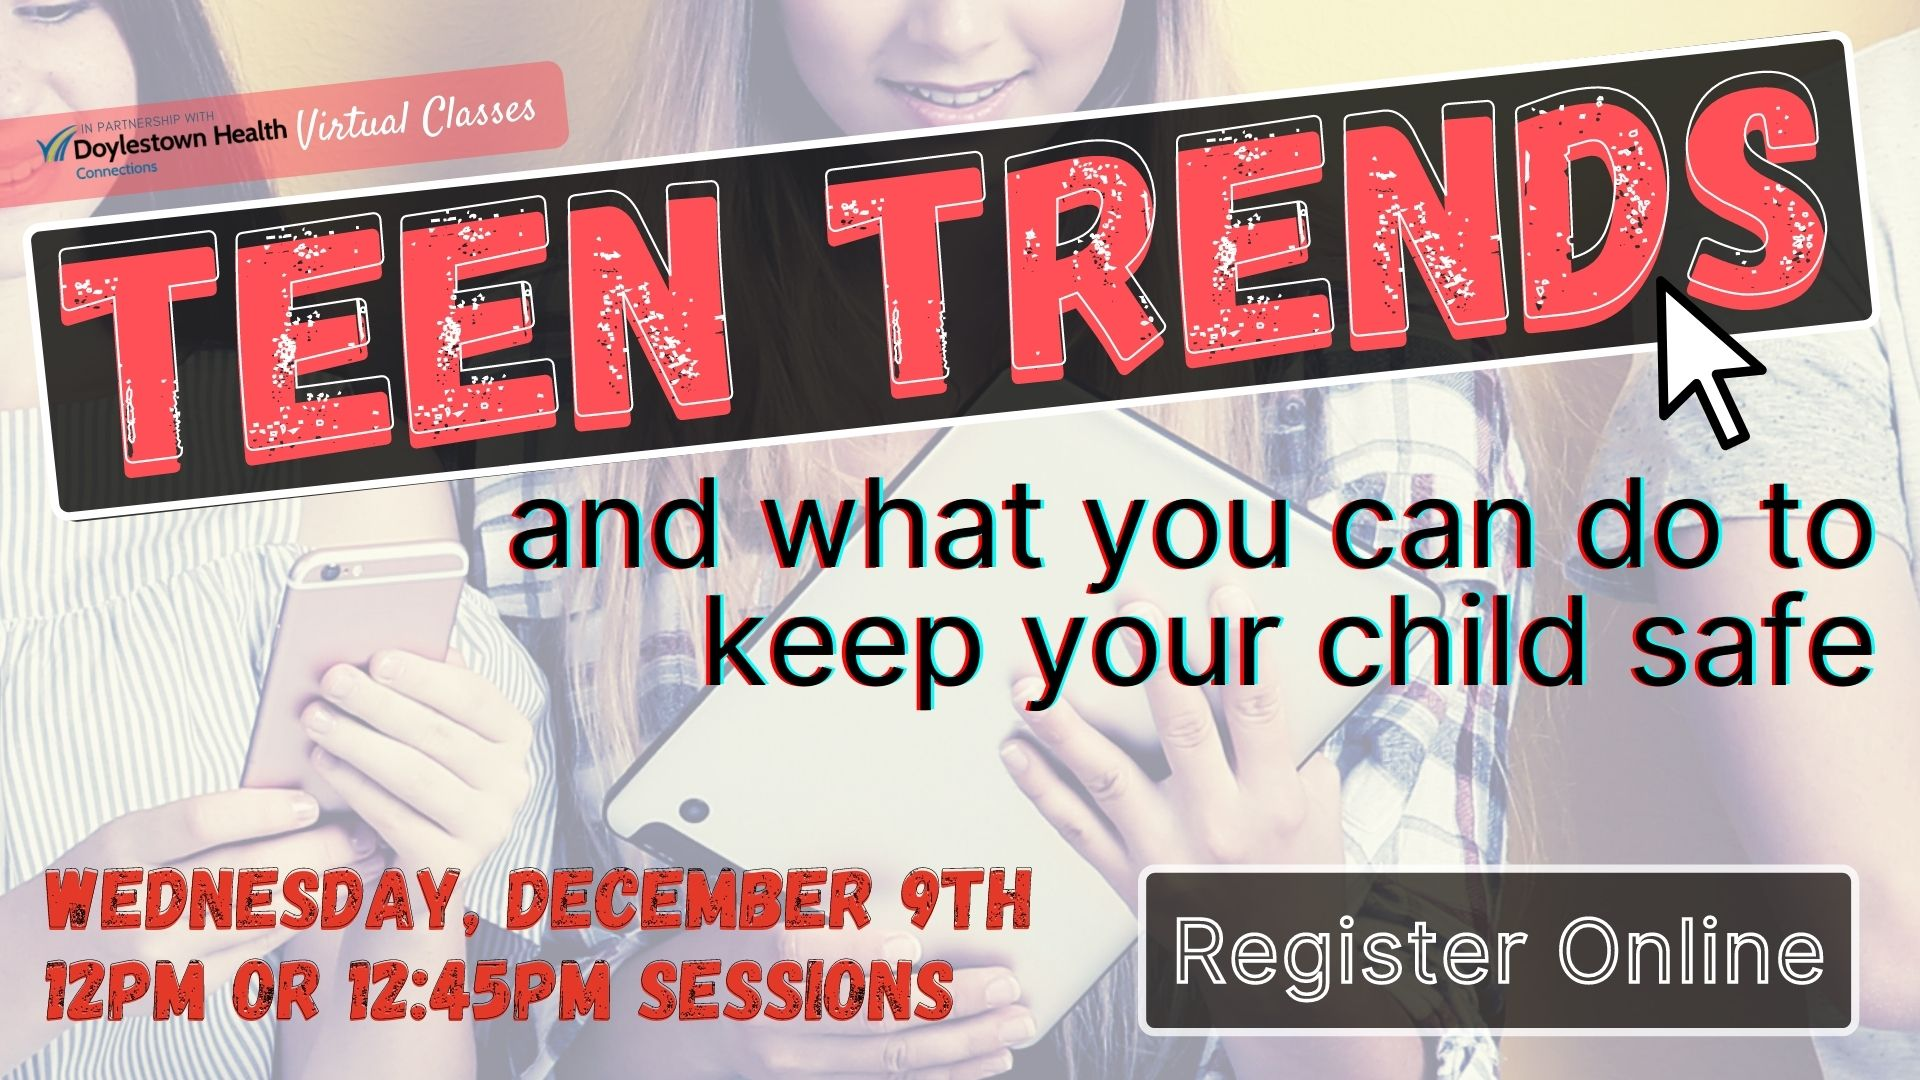 Teen Trends and What You Can Do To Keep Your Child Safe (Webinar) - 12:45PM Session